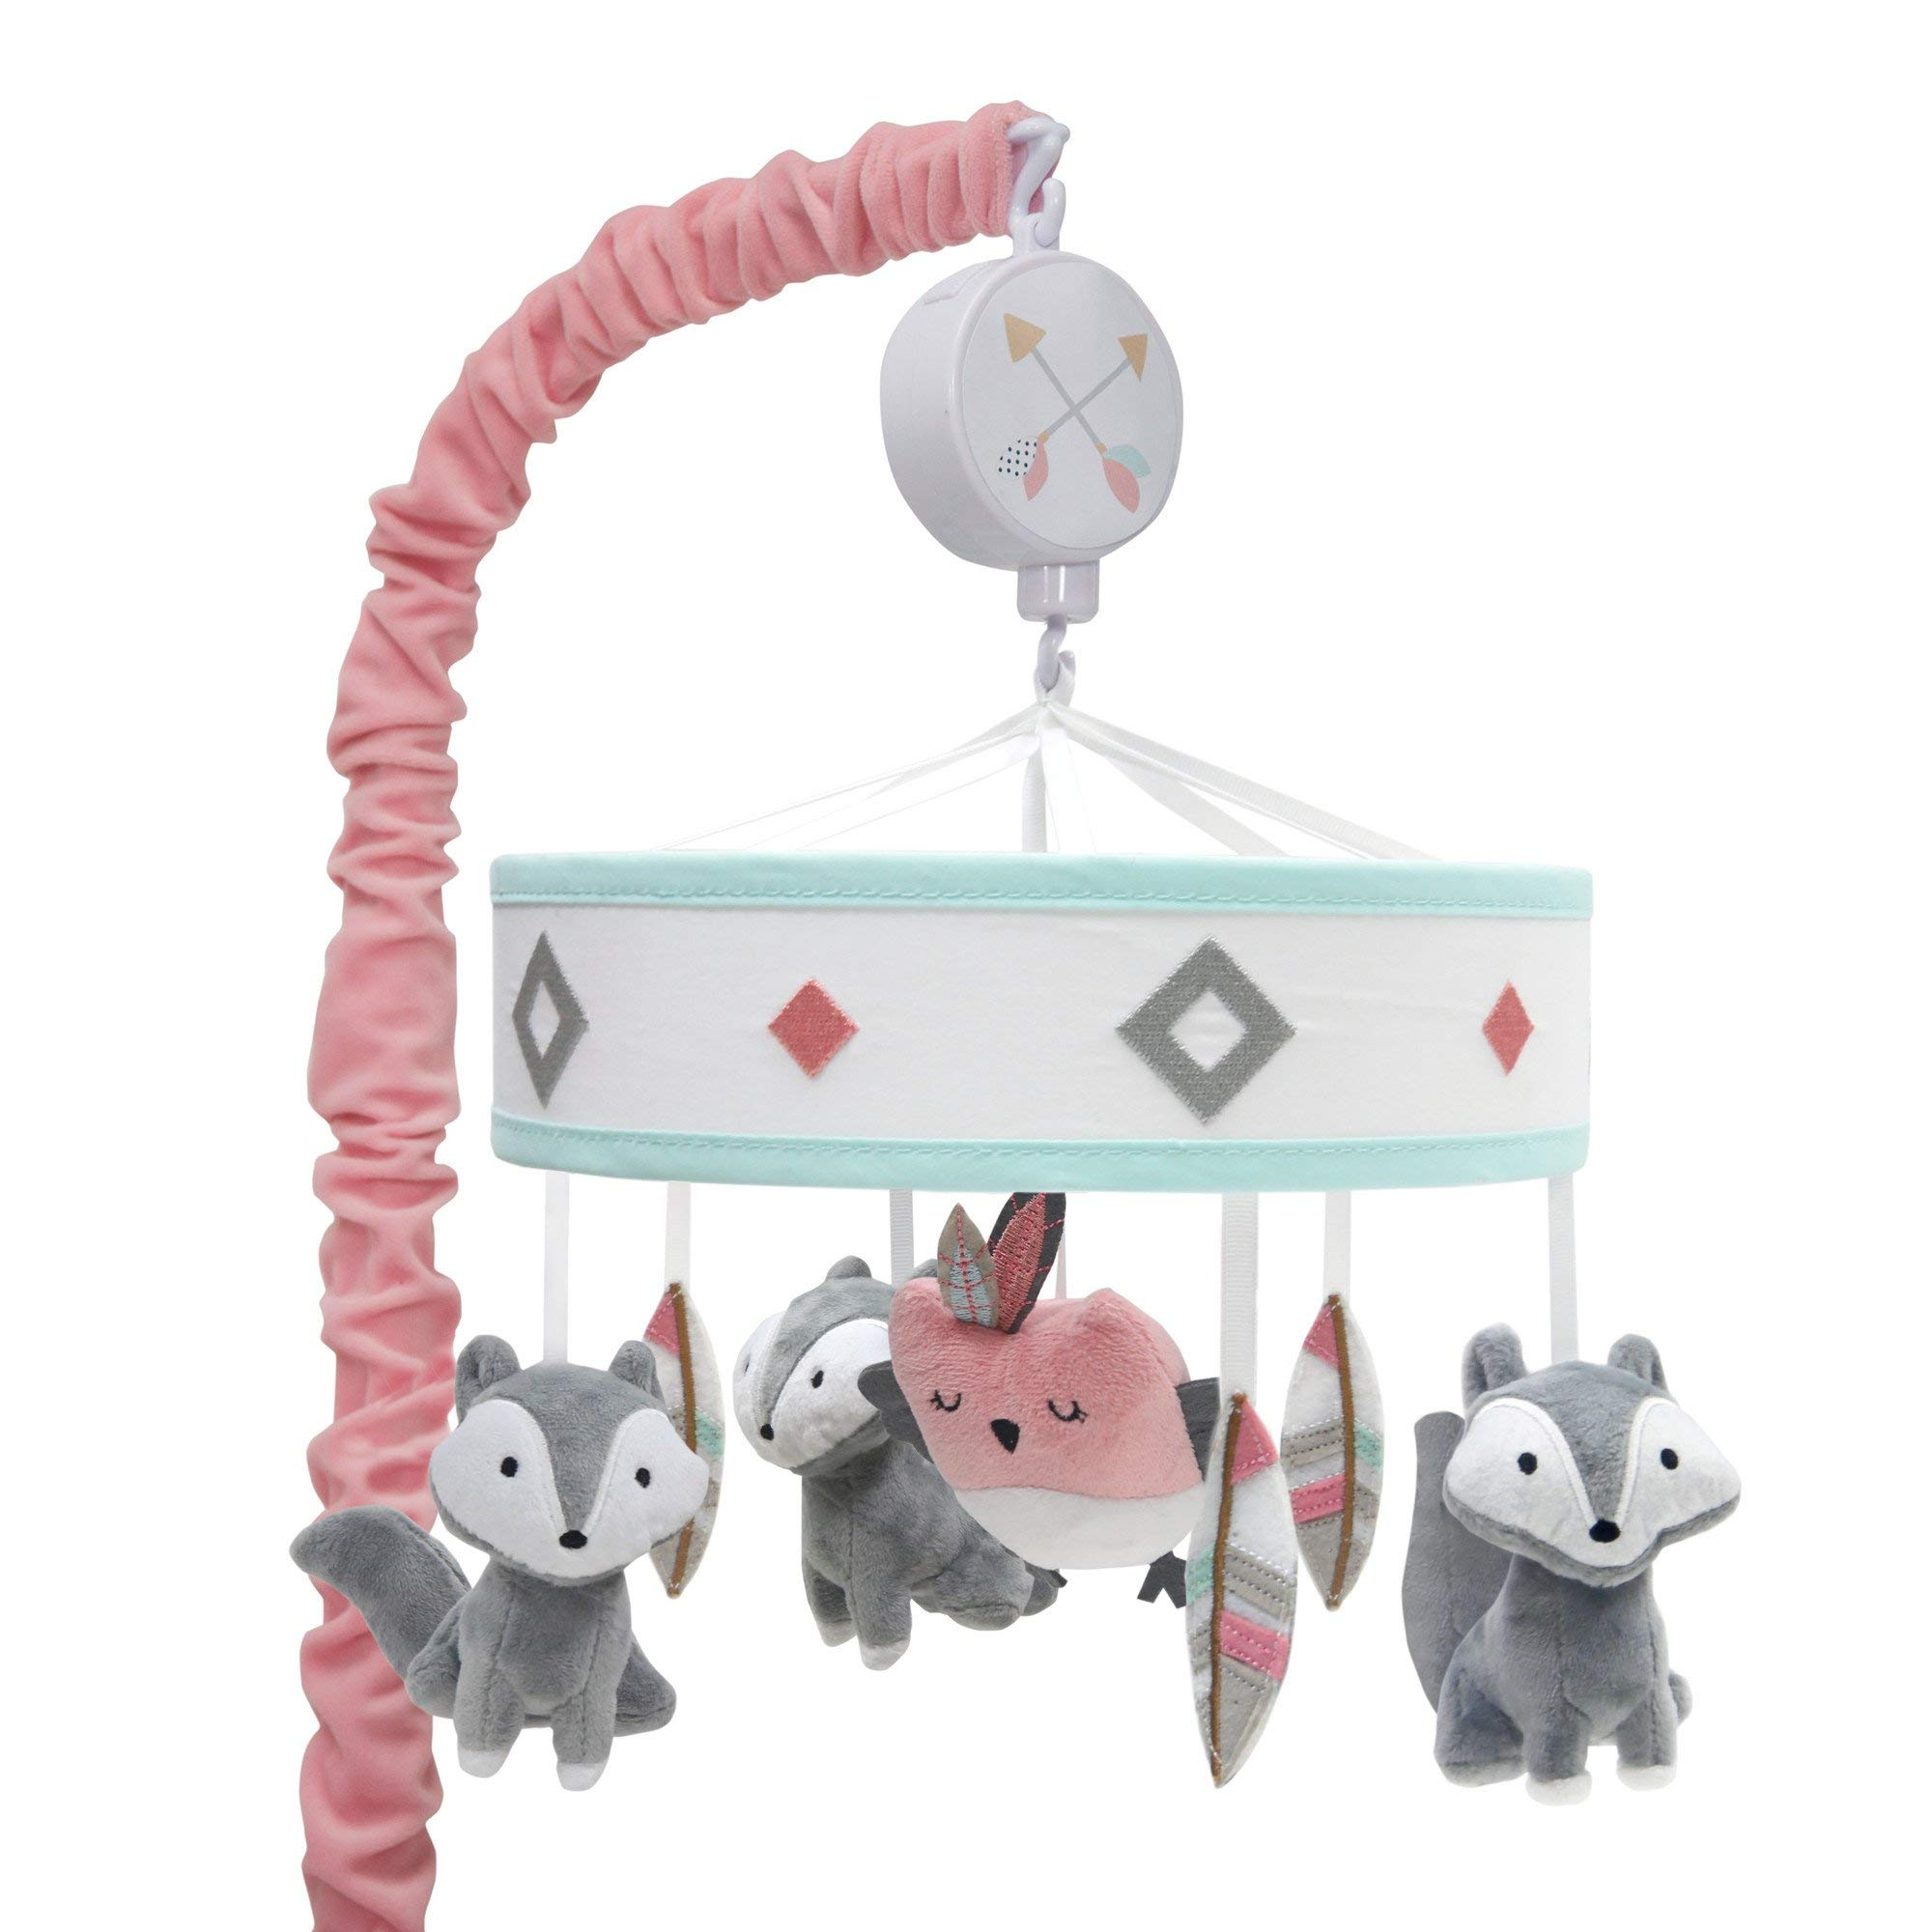 Lambs & Ivy Little Spirit Musical Baby Crib Mobile - White, Coral, Animals, Modern, Owl, Fox